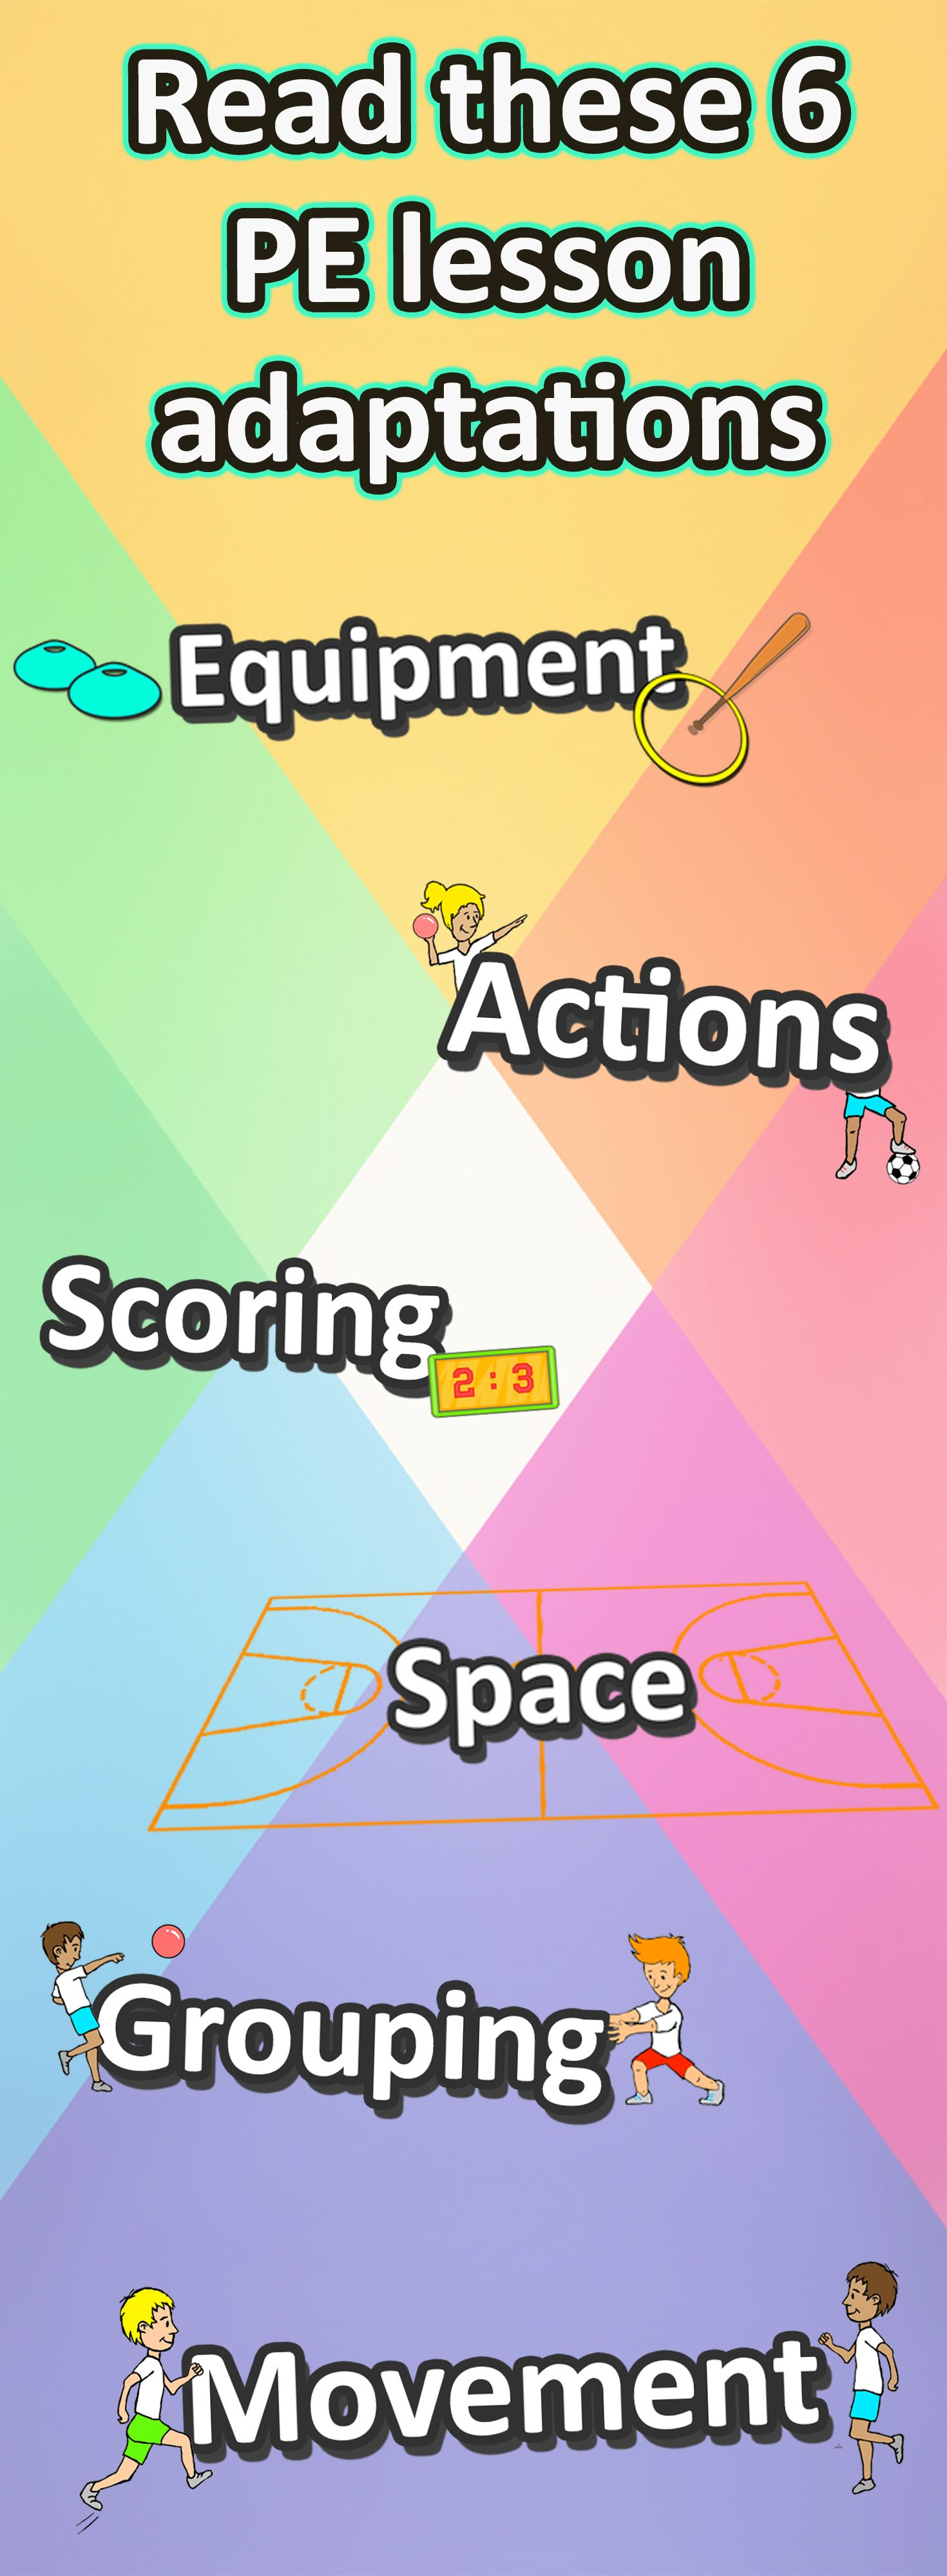 Challenge Your Pe Class With These 6 Lesson Adaptations